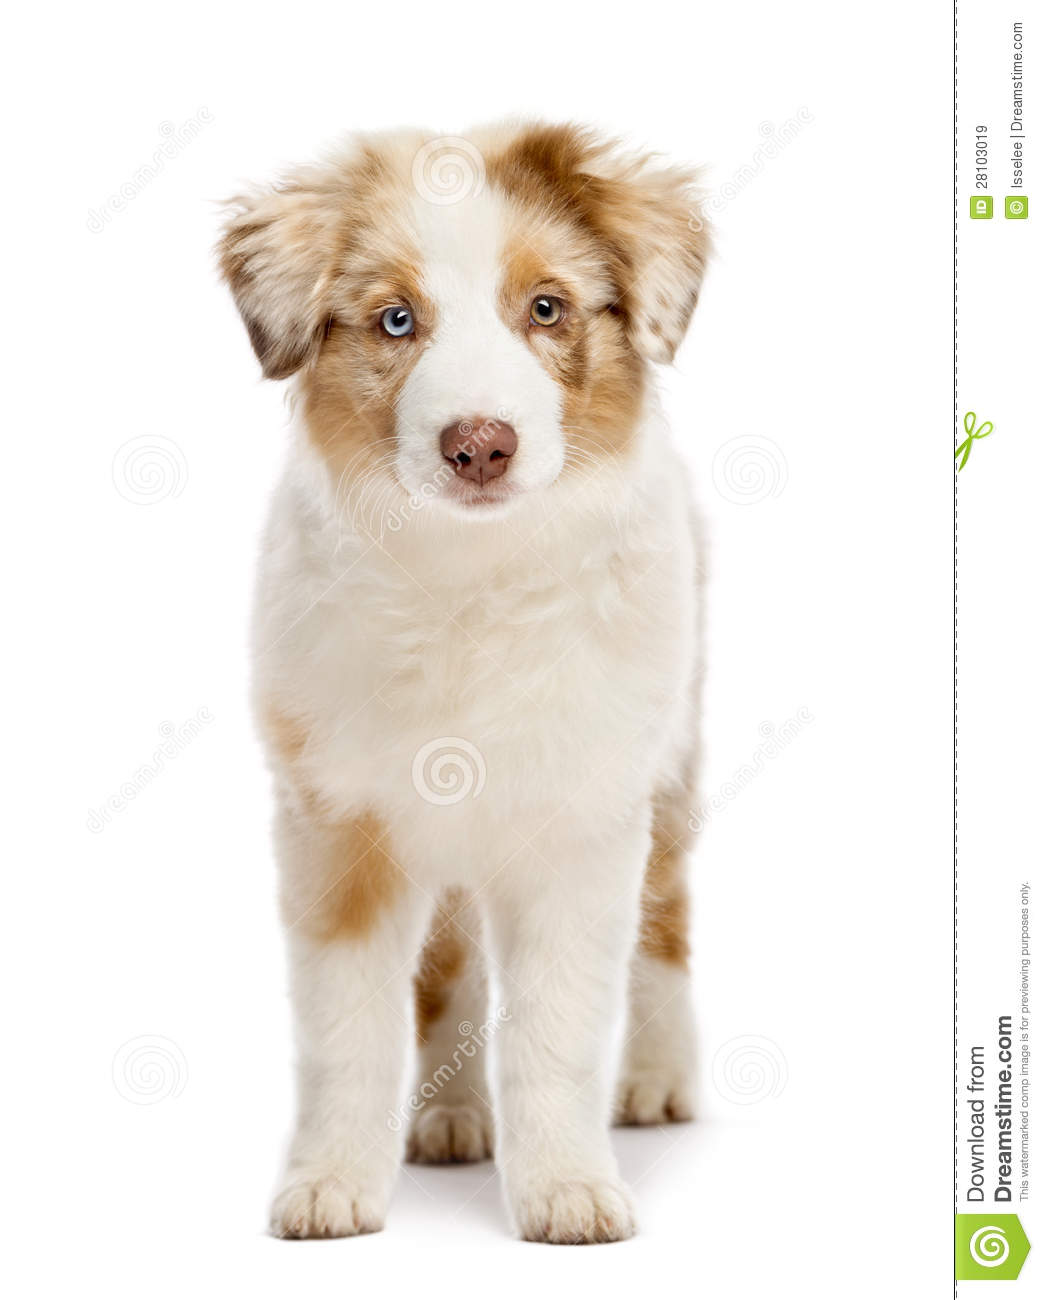 Australian Shepherd Puppy, 3 Months Old Royalty Free Stock Images ...